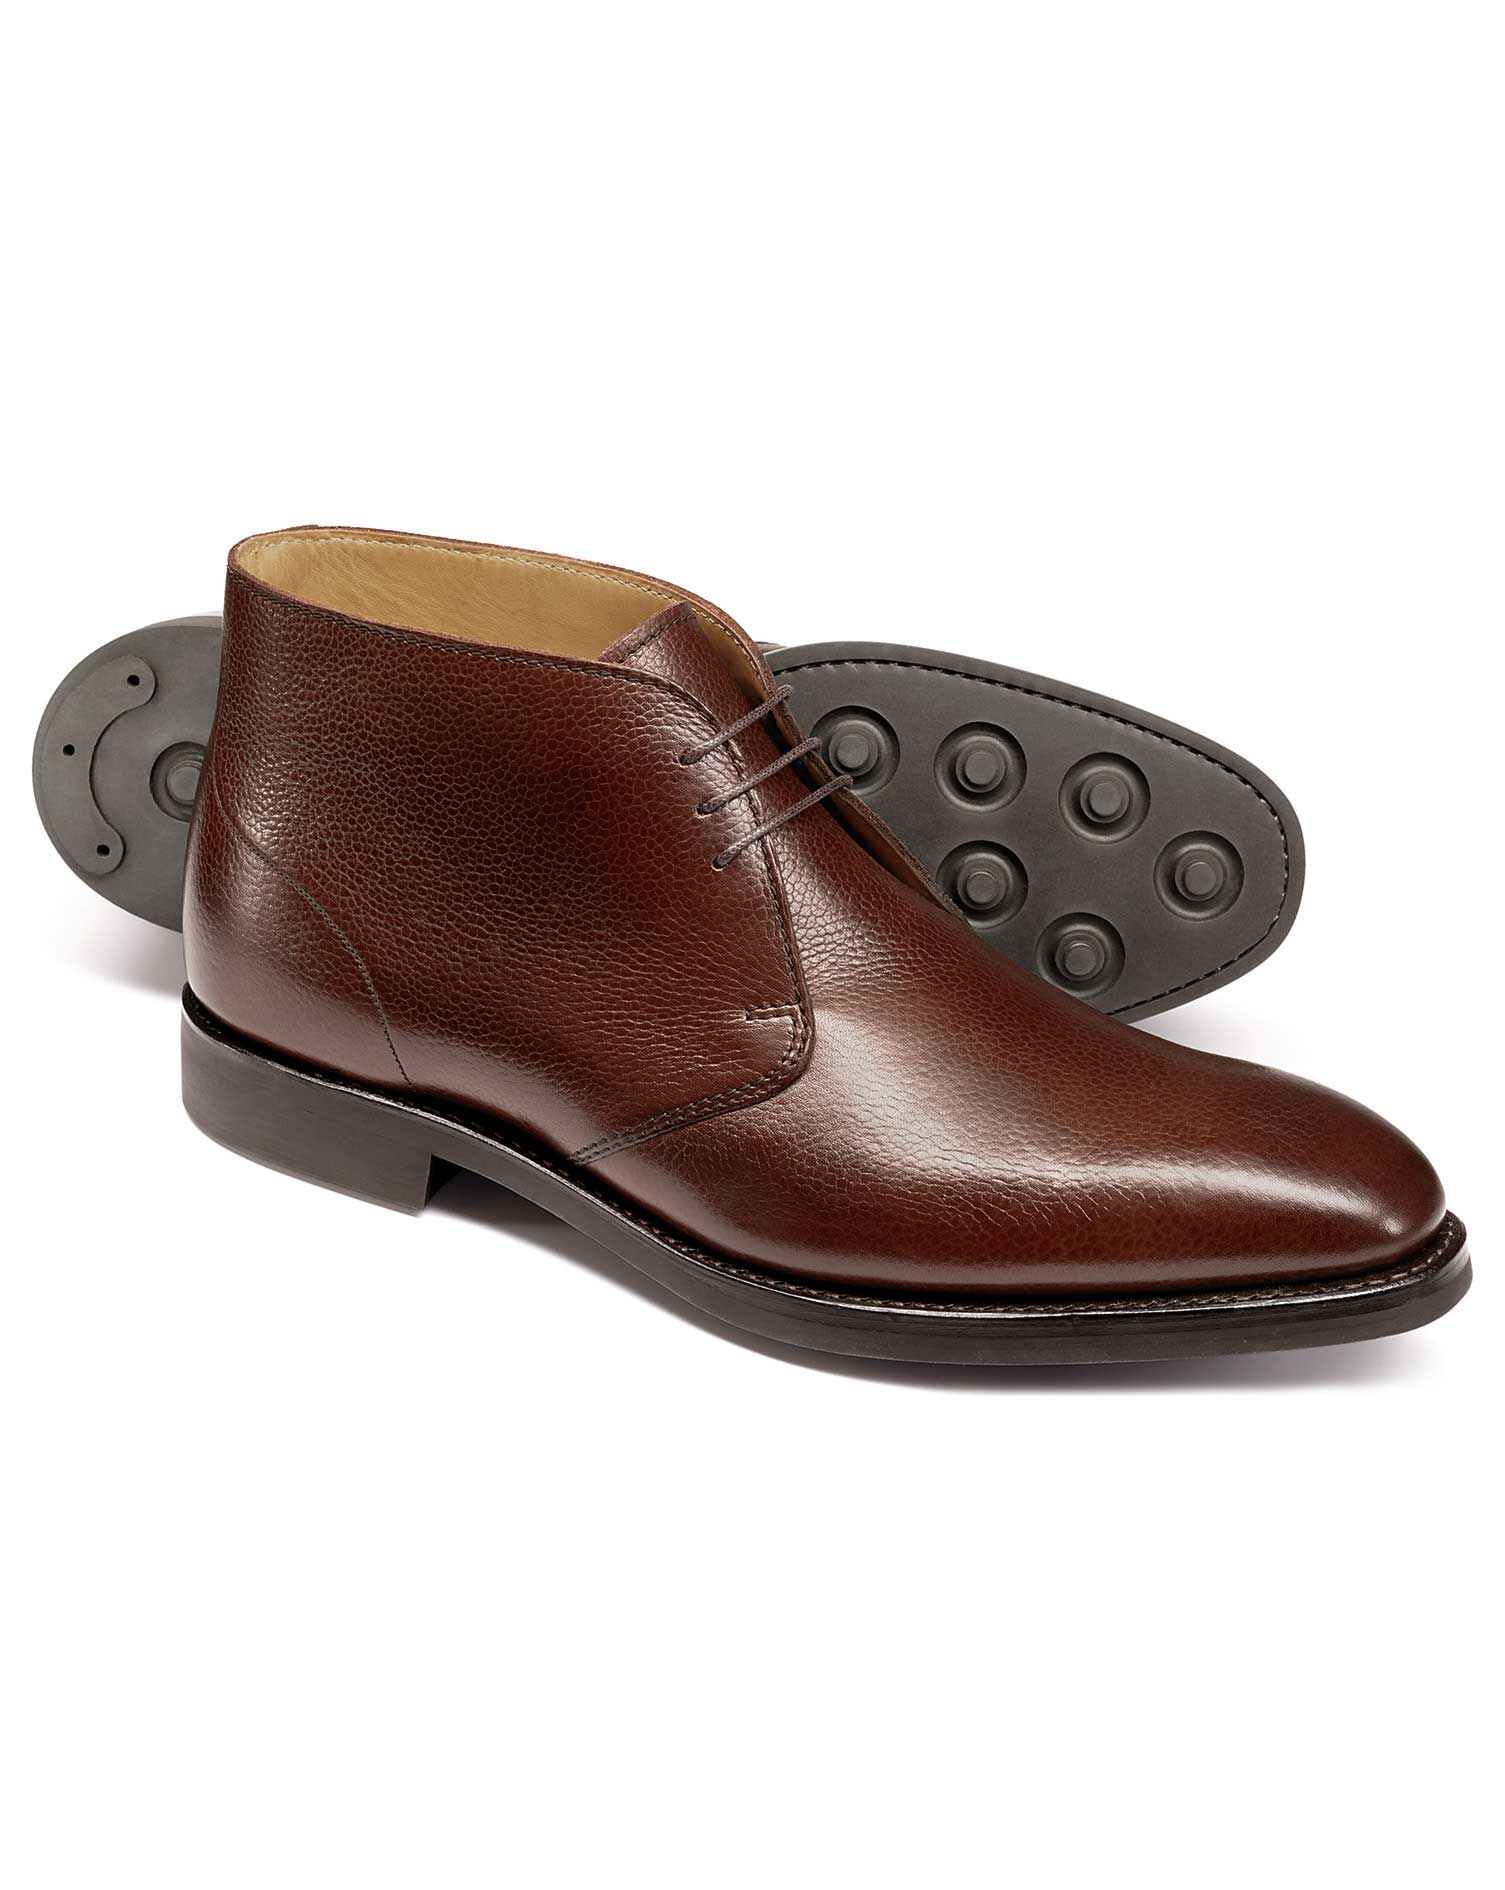 Brown Goodyear Welted Chukka Boots Size 7 R by Charles Tyrwhitt